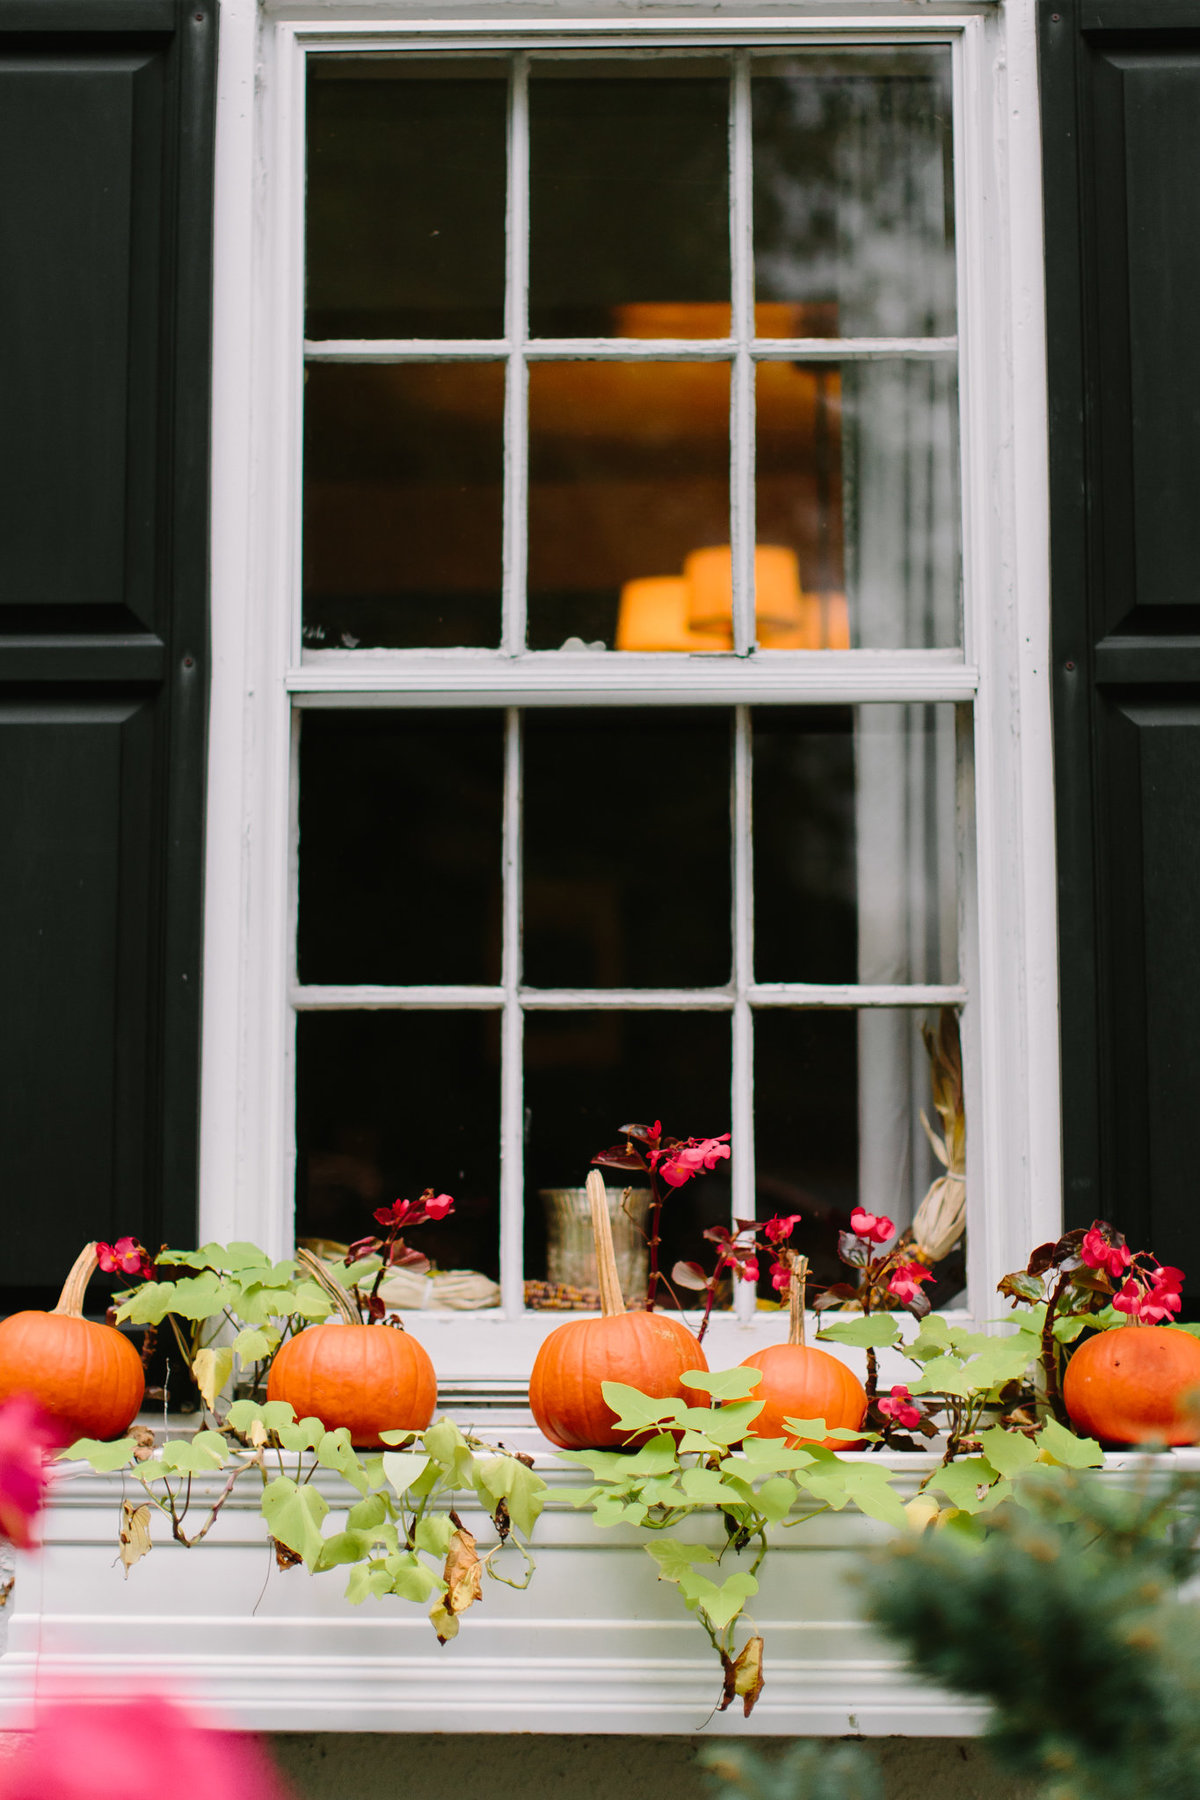 window decor with pumpkins